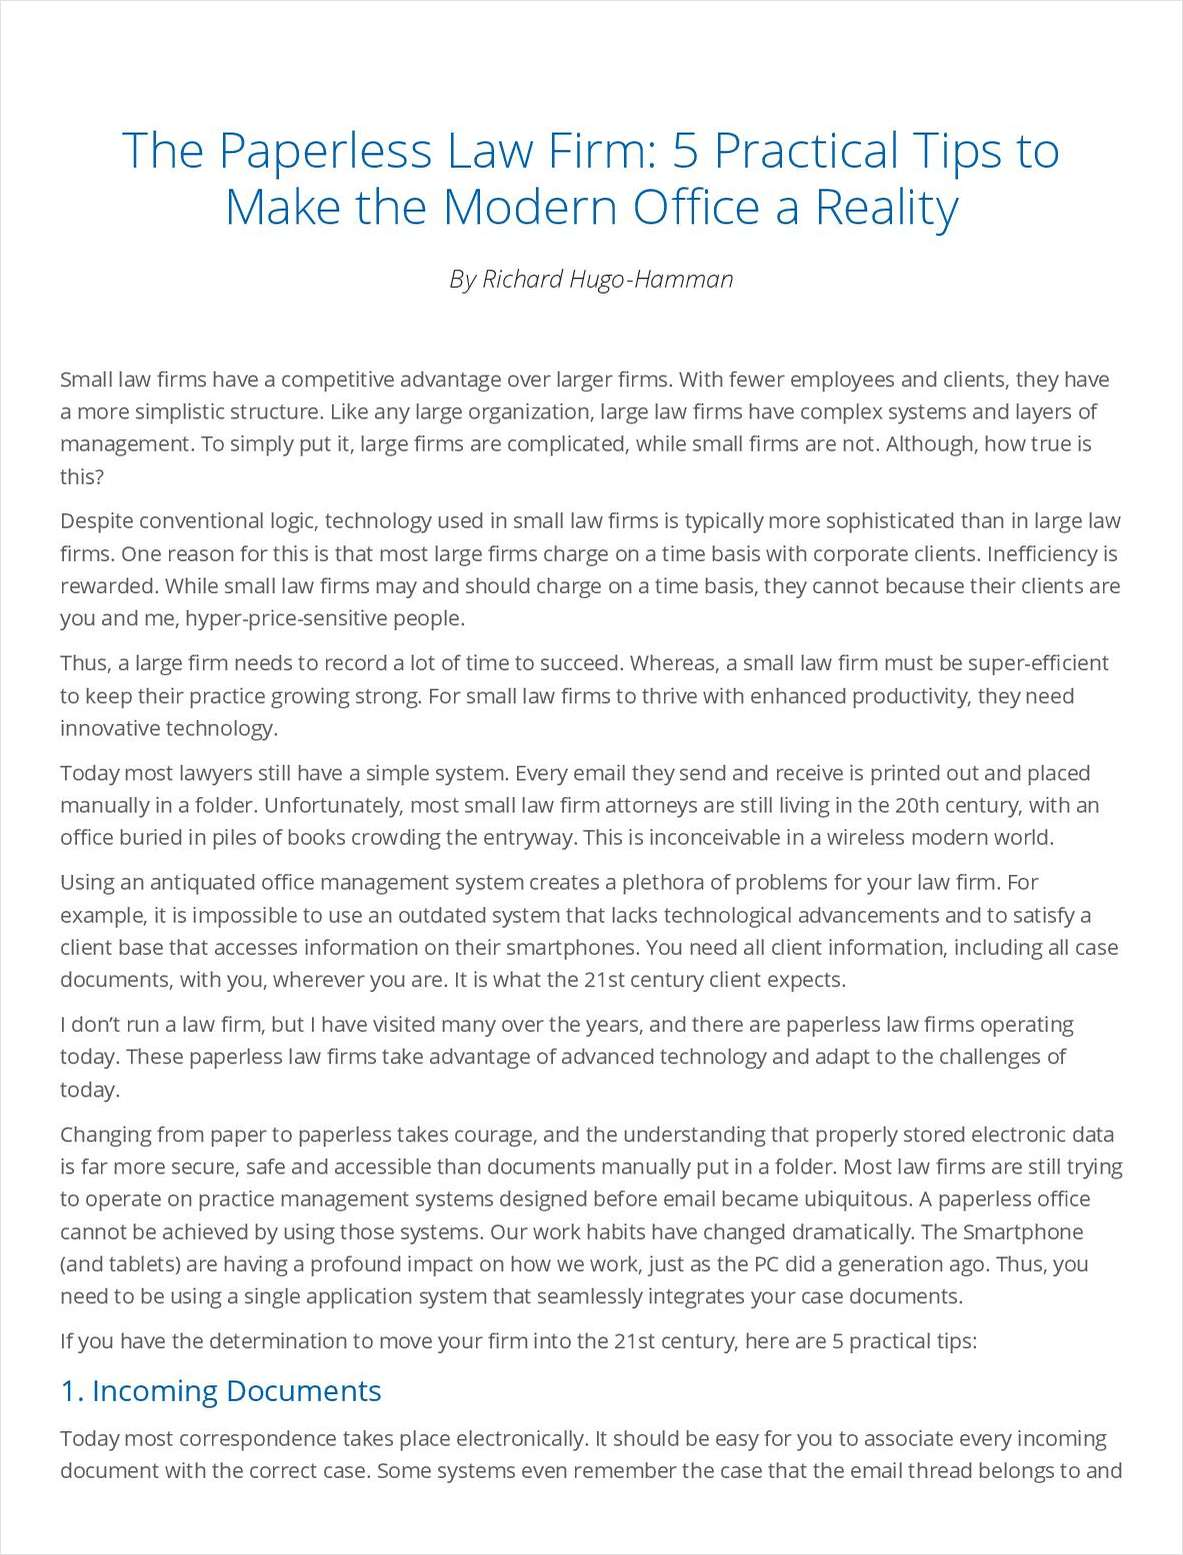 The Paperless Law Firm: 5 Practical Tips to Make the Modern Office a Reality